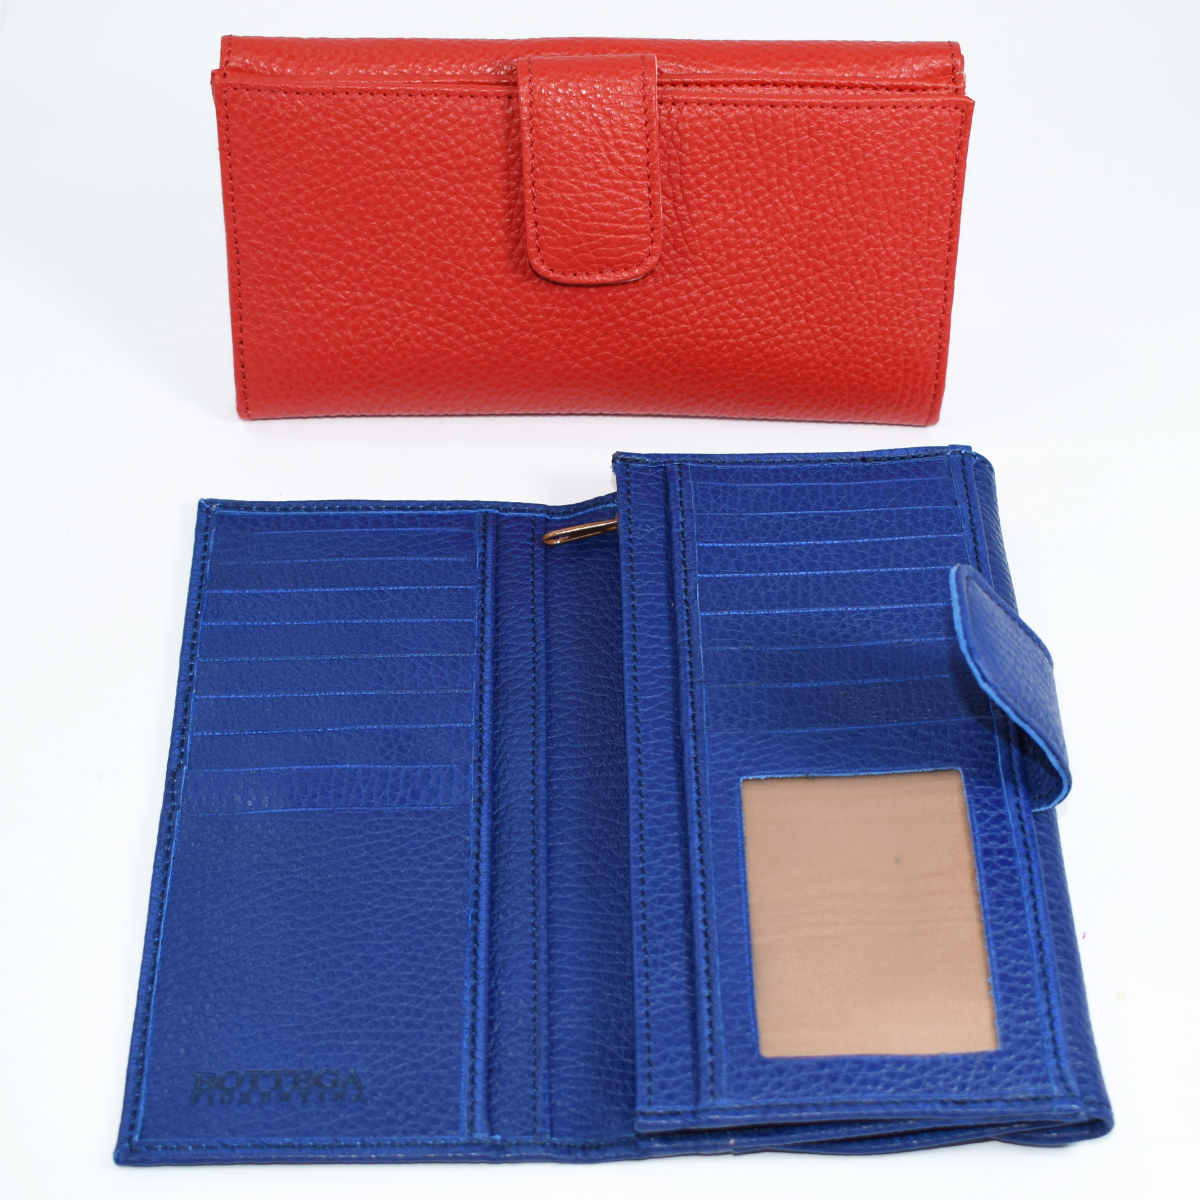 1632 WALLET WITH FLAP by Bottega Fiorentina